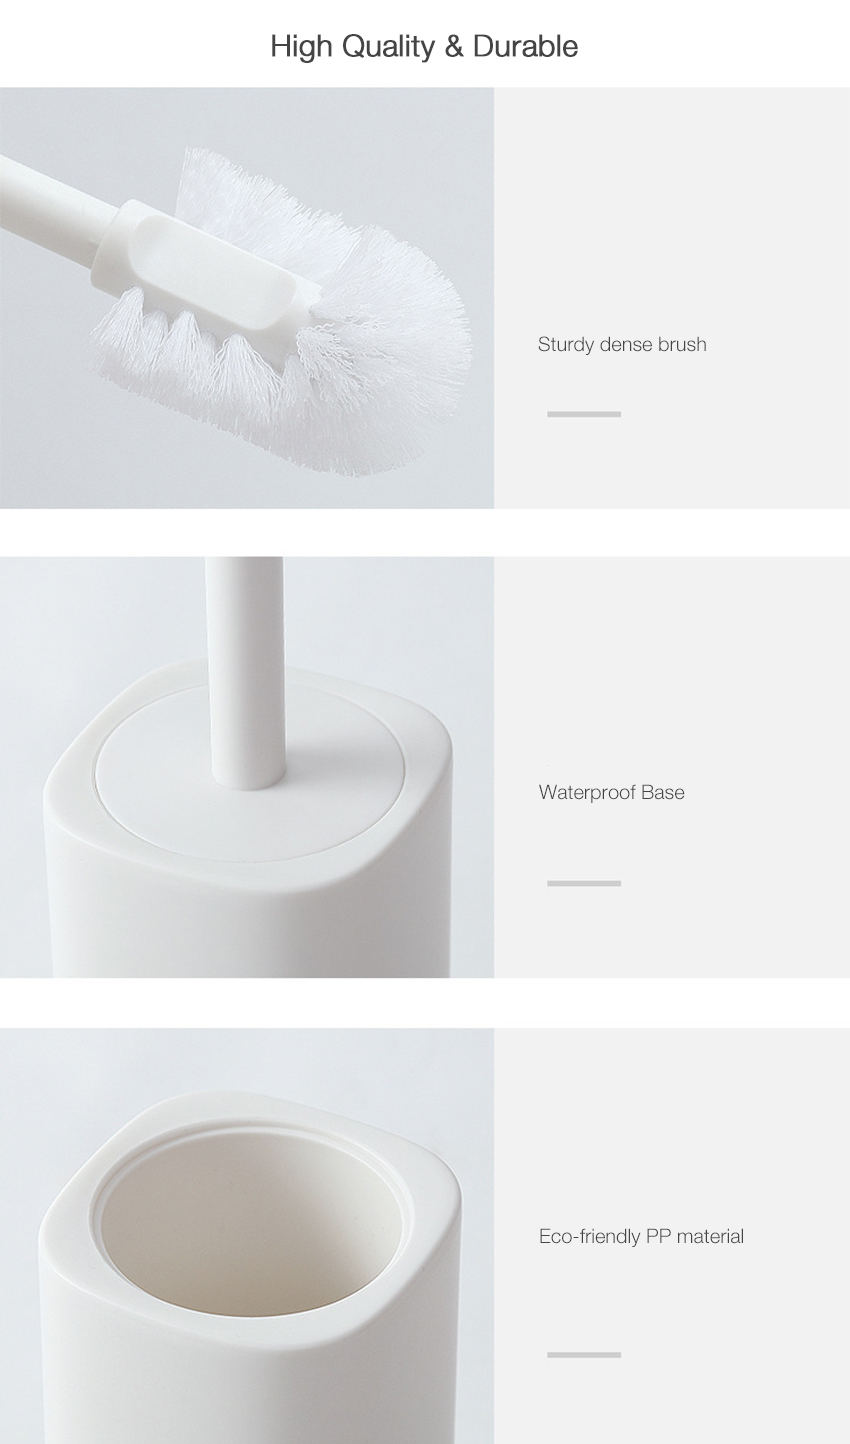 Honana Home Bathroom Durable Simple Design Toilet Brush Cleaning Brush with Waterproof Base